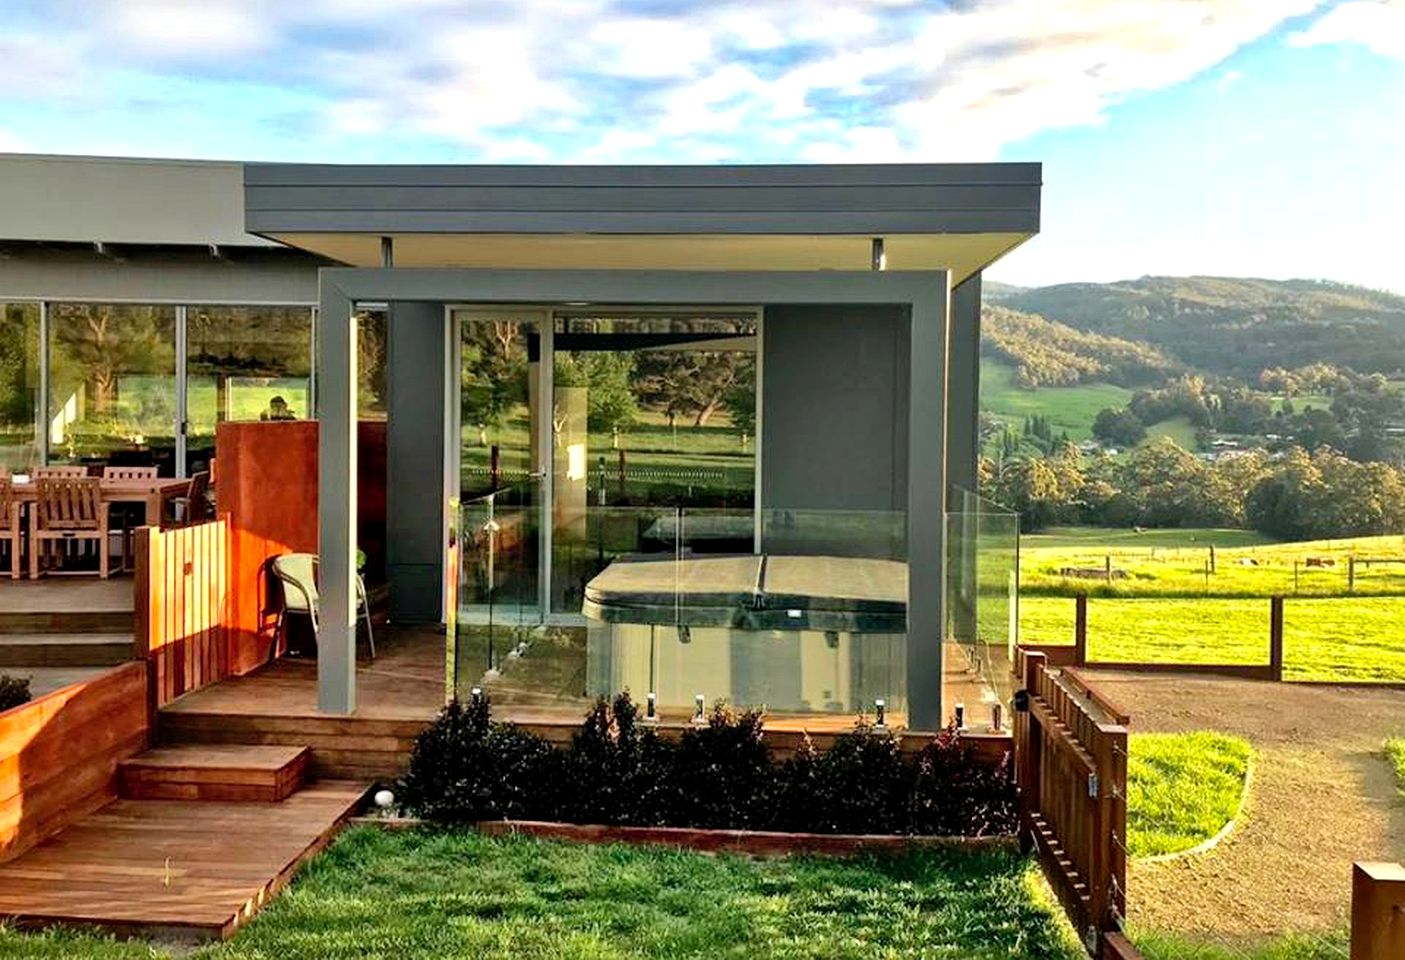 This farm stay accommodation near Hobart is the perfect romantic getaway in Tasmania and comes with a private hot tub and amazing views of the valley!